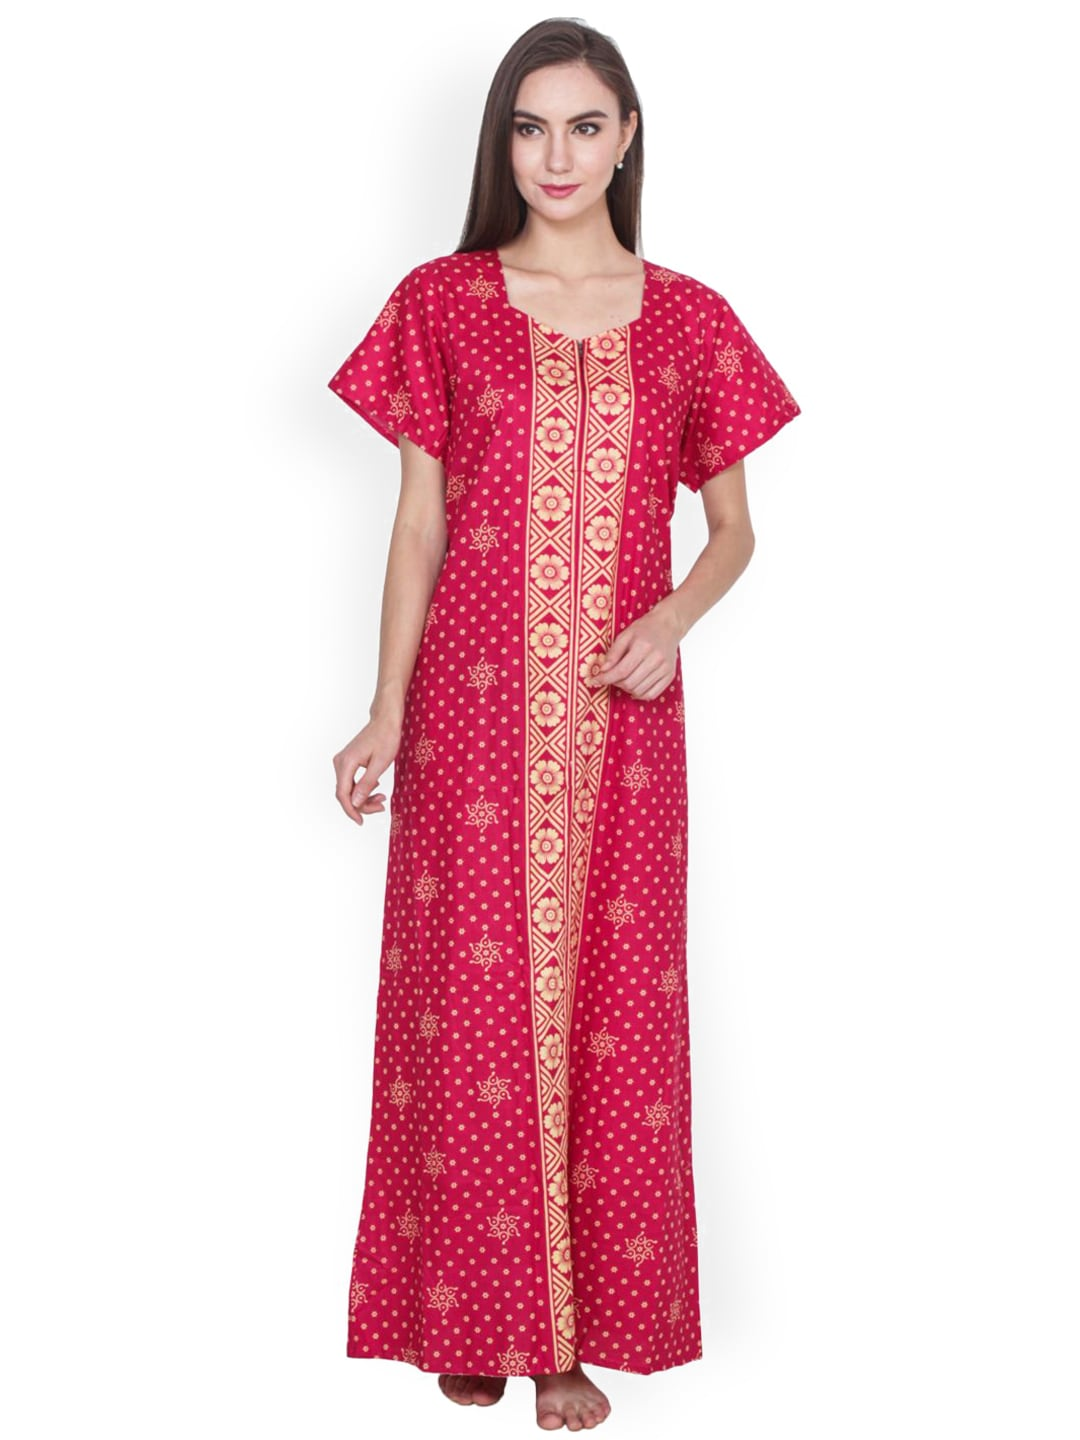 05c4c4c2c Juliet Nightwear Nightdresses - Buy Juliet Nightwear Nightdresses online in  India